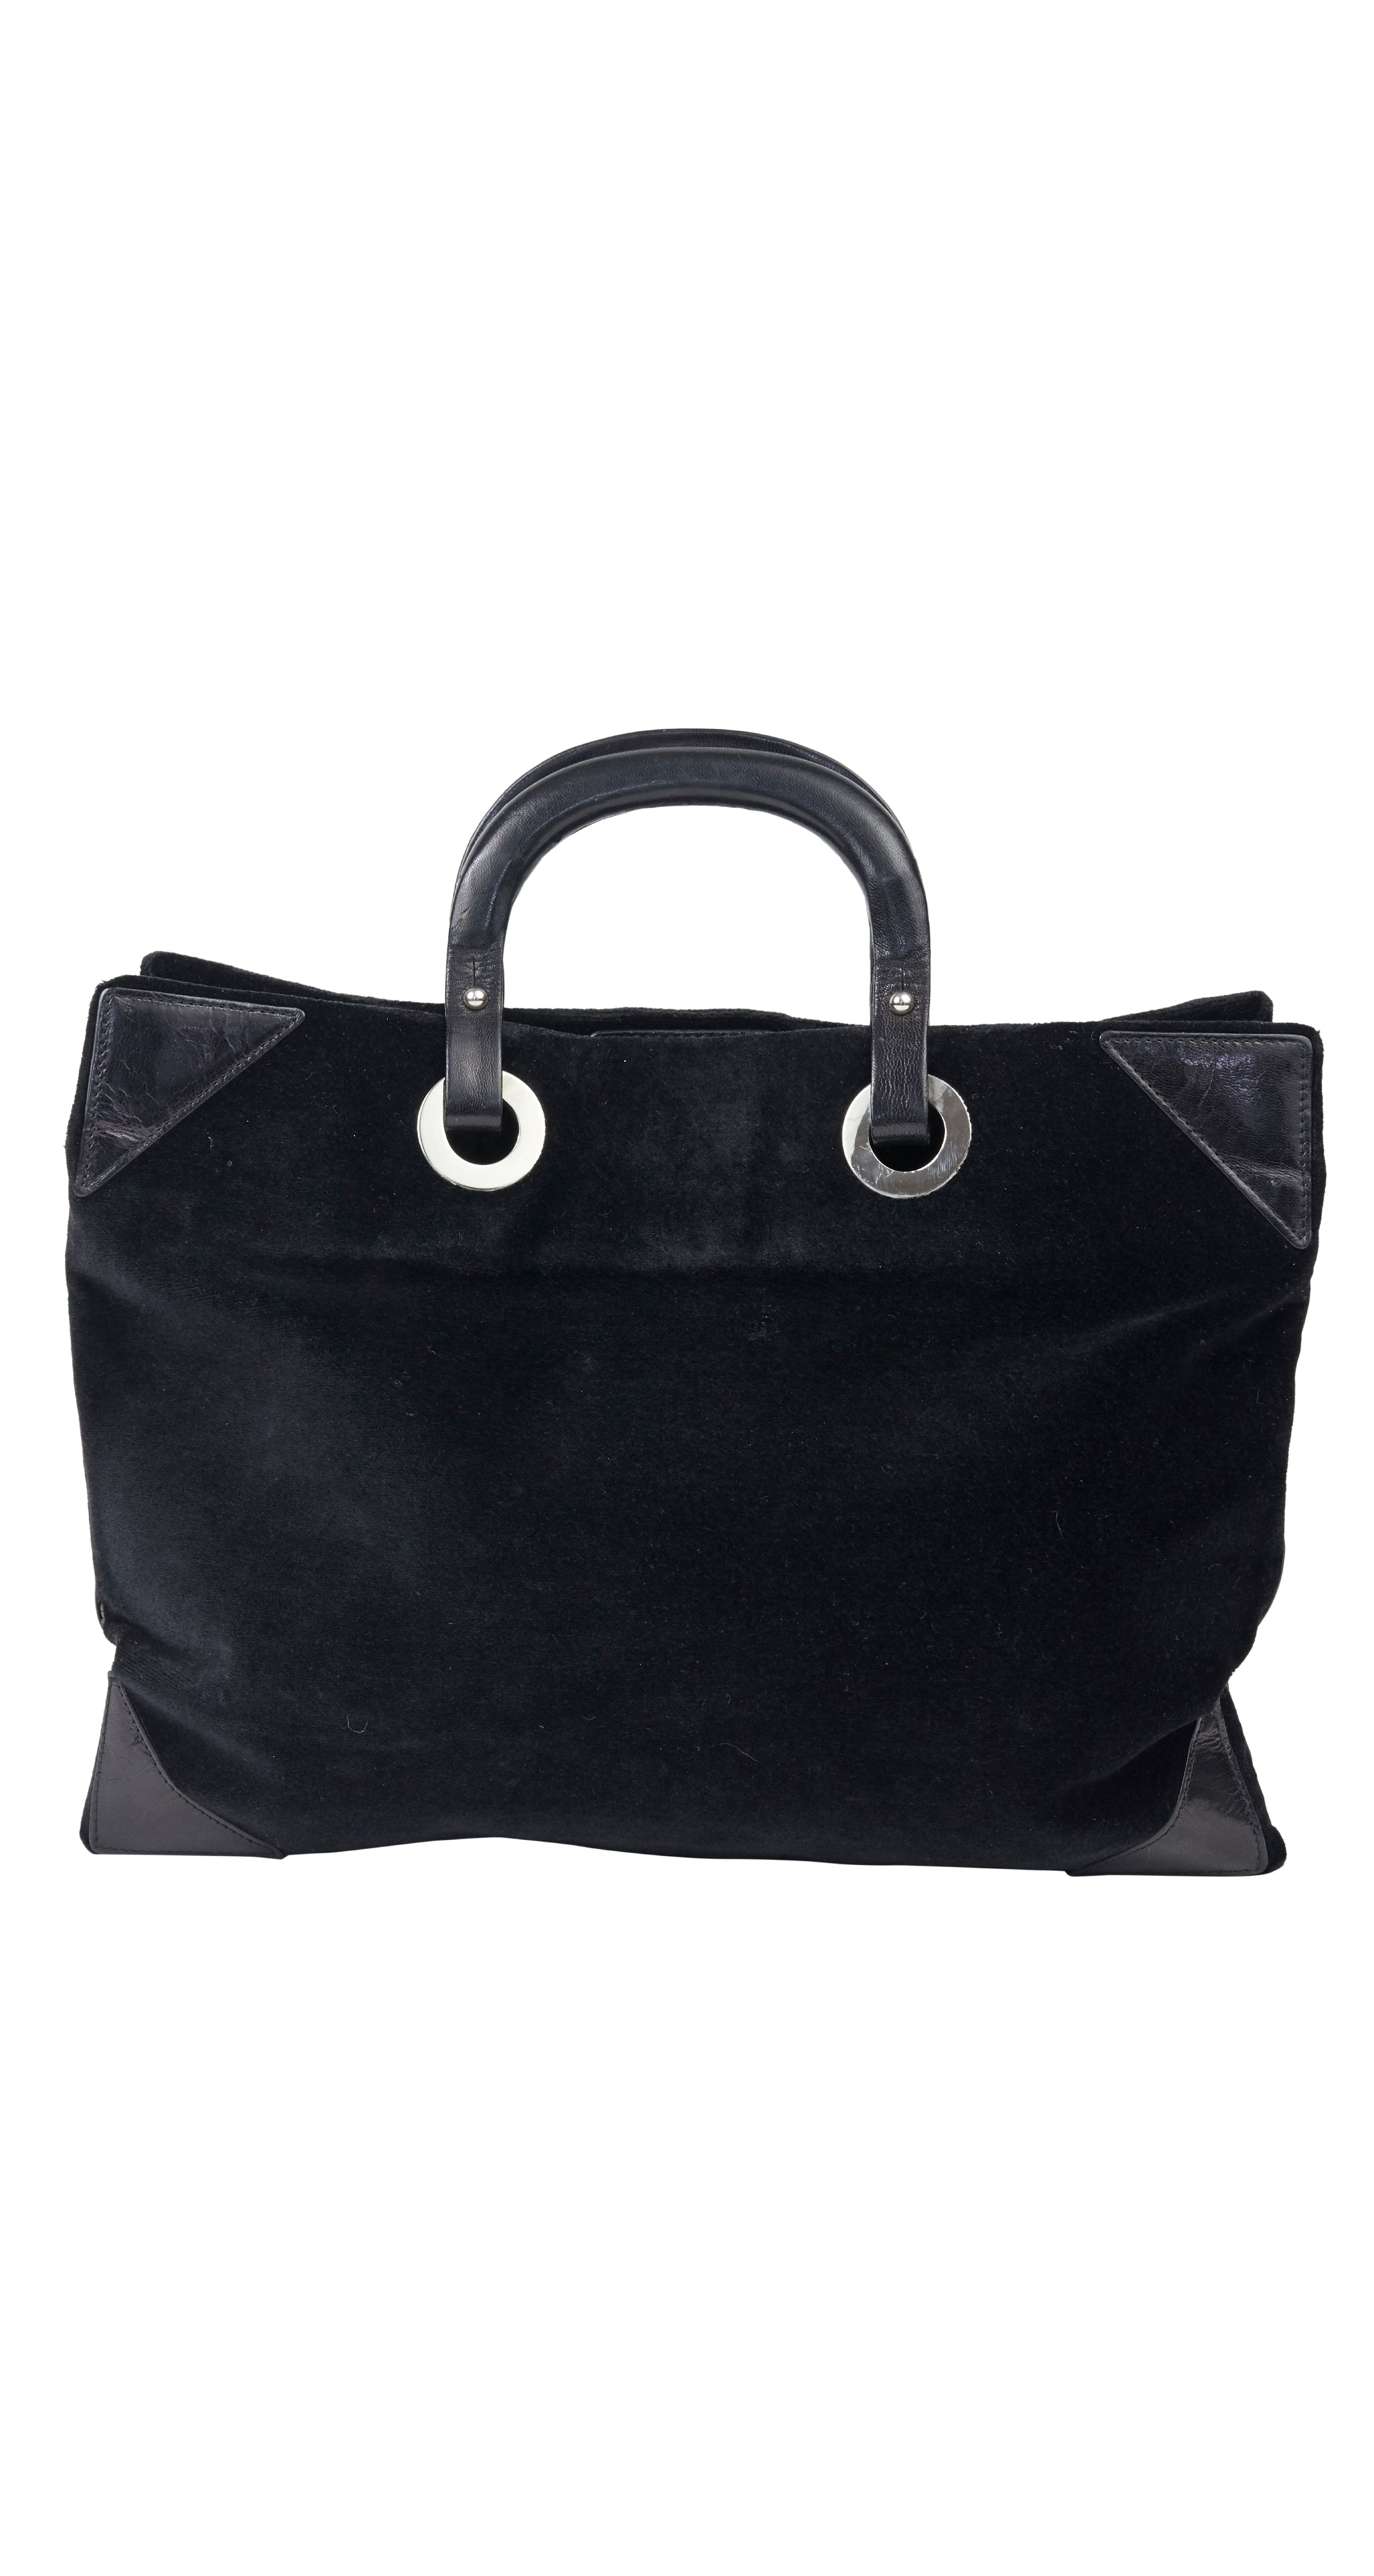 1970s Italian Black Velvet & Leather Hand Bag